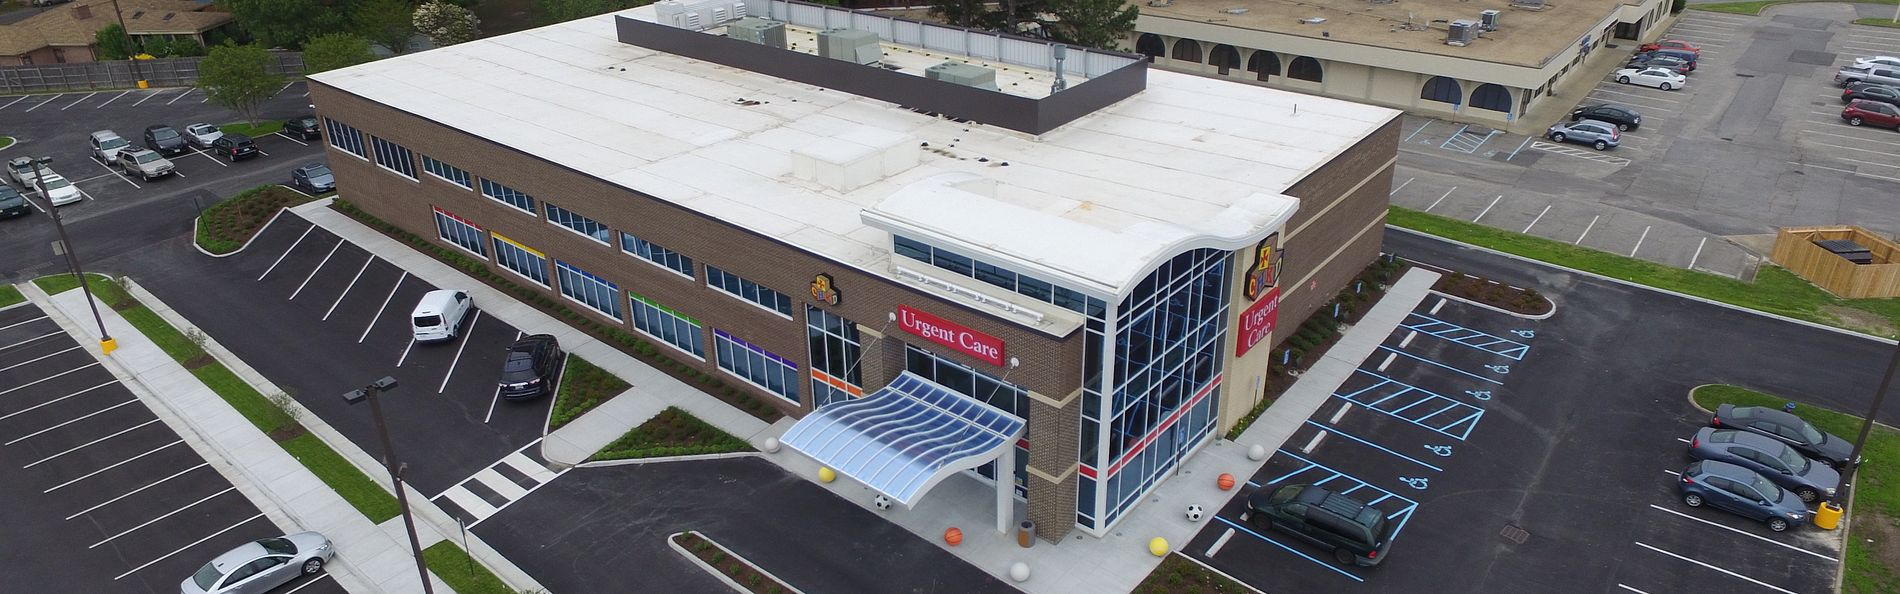 Aerial shot of the Children's Hospital of the Kings' Daughters Health Center & Urgent Care at Loehmann's